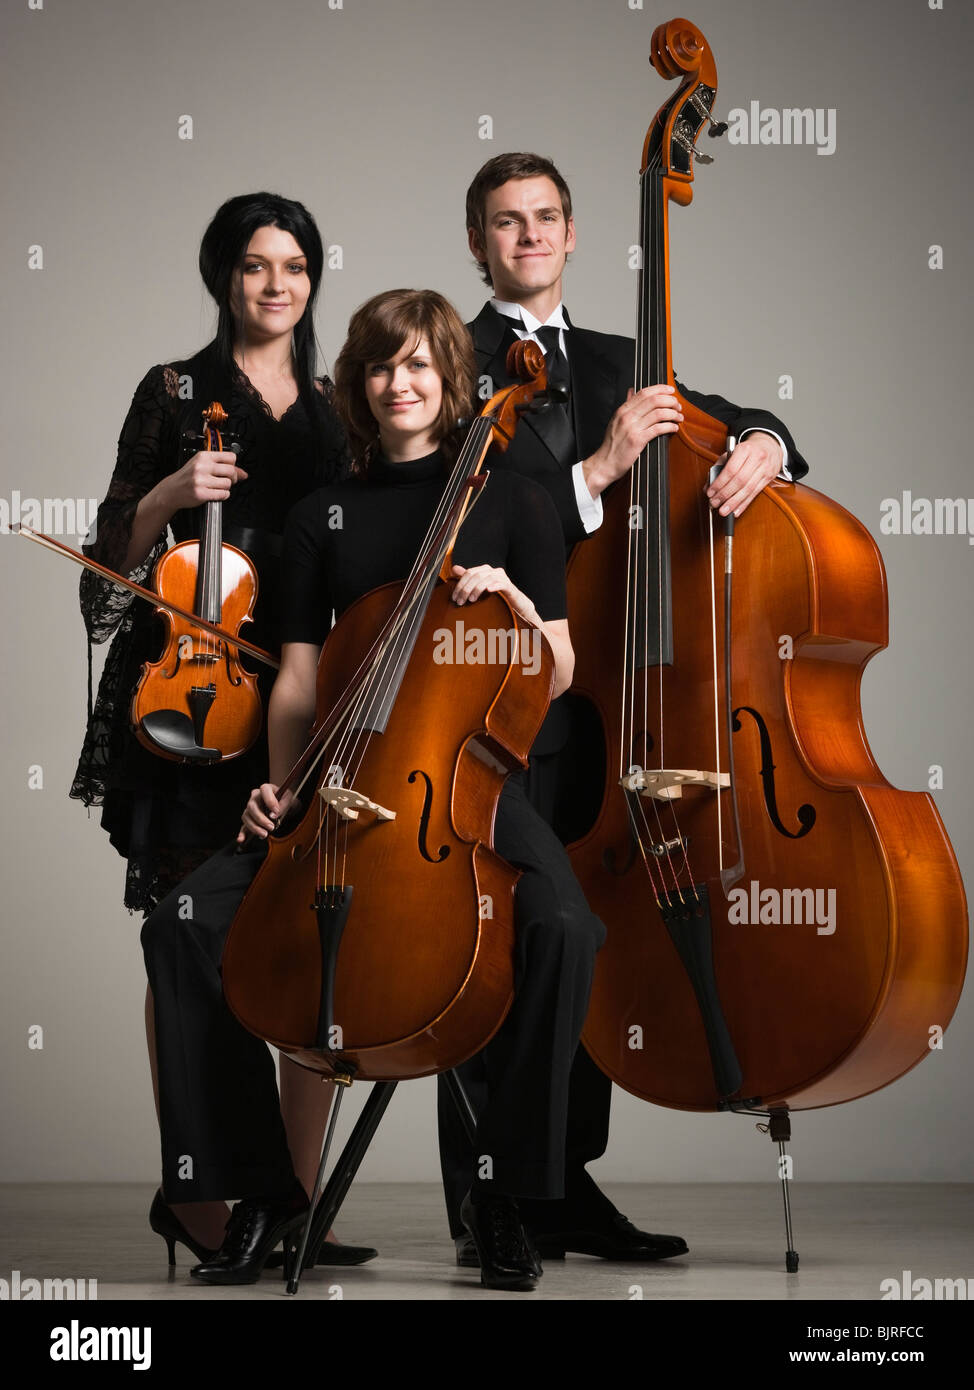 Studio portrait of three young musicians with instruments - Stock Image